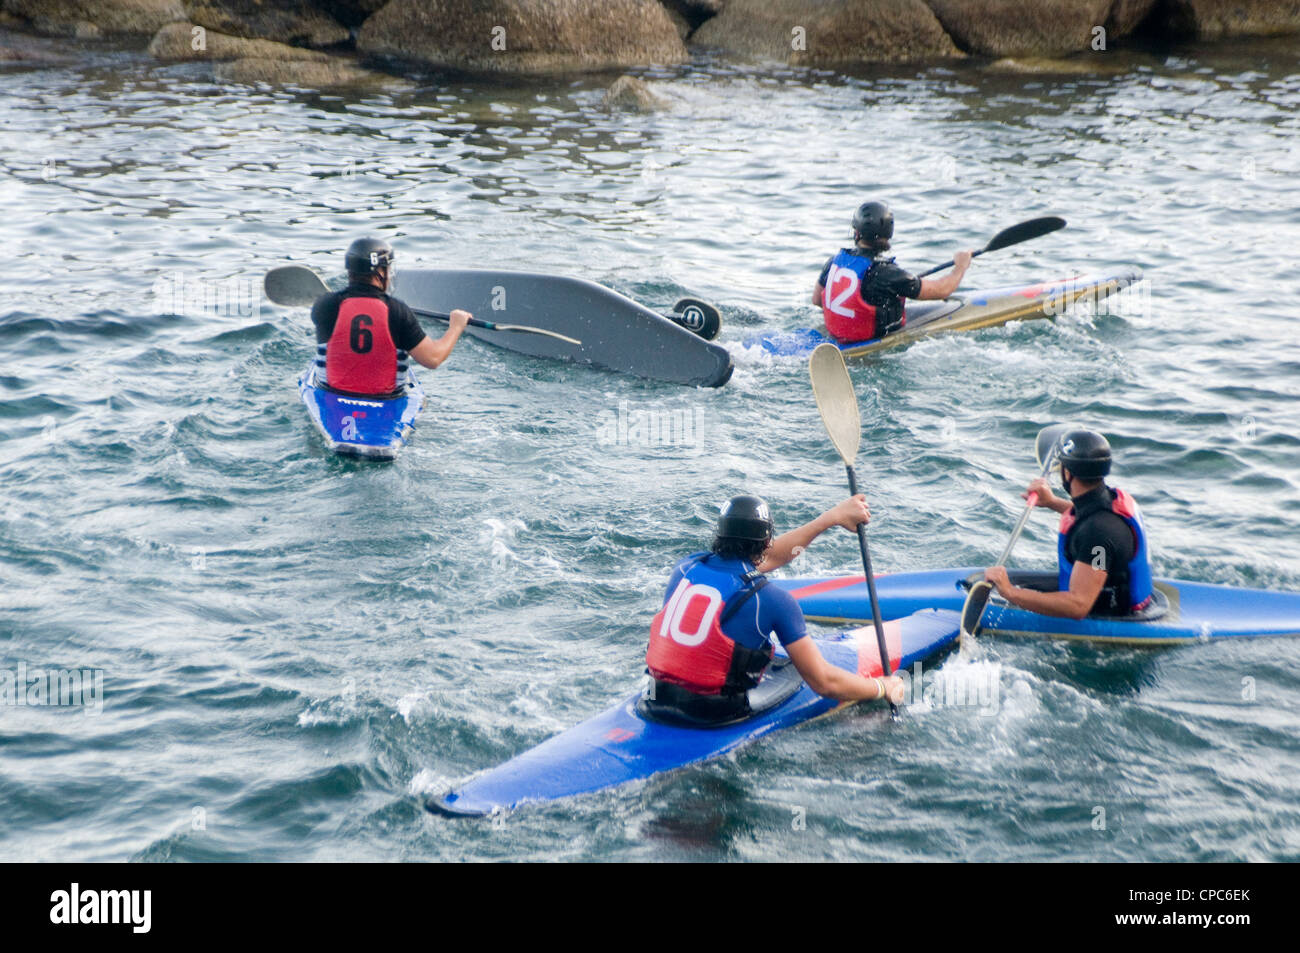 canoe canoes canoing water polo football net barrel roll rolling paddles paddles paddling team sport sports watersports - Stock Image